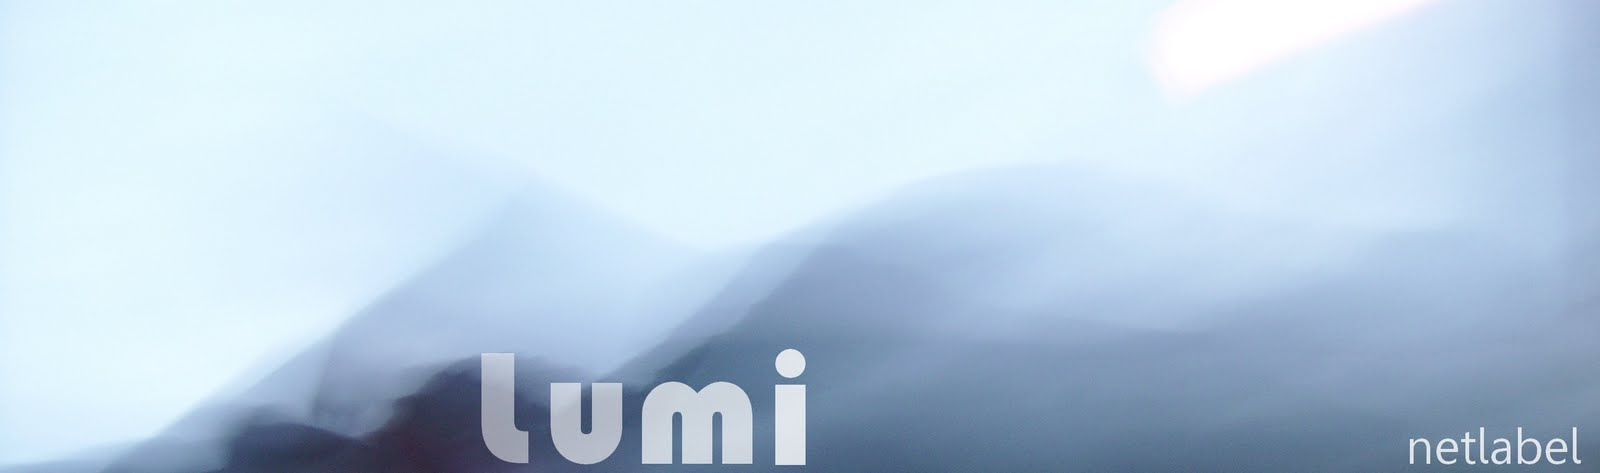 Lumi netlabel